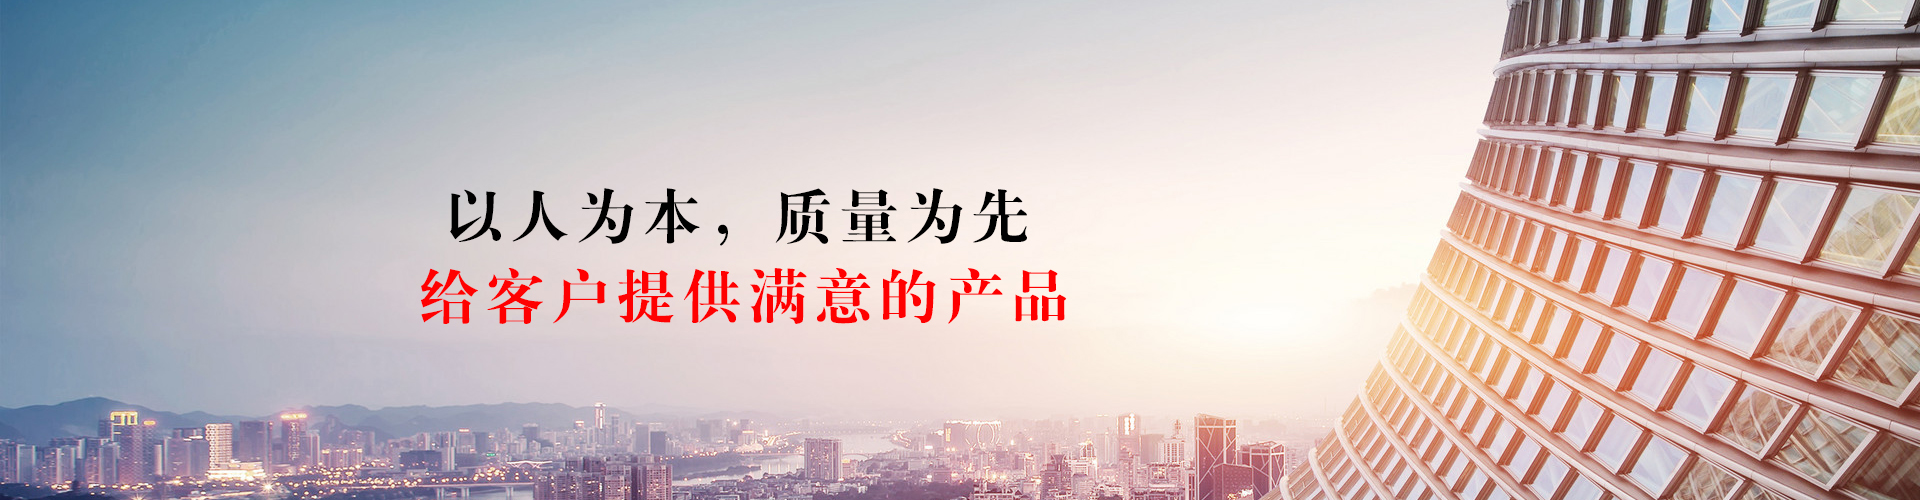 http://www.htai.hk/data/images/slide/20190826155922_571.jpg